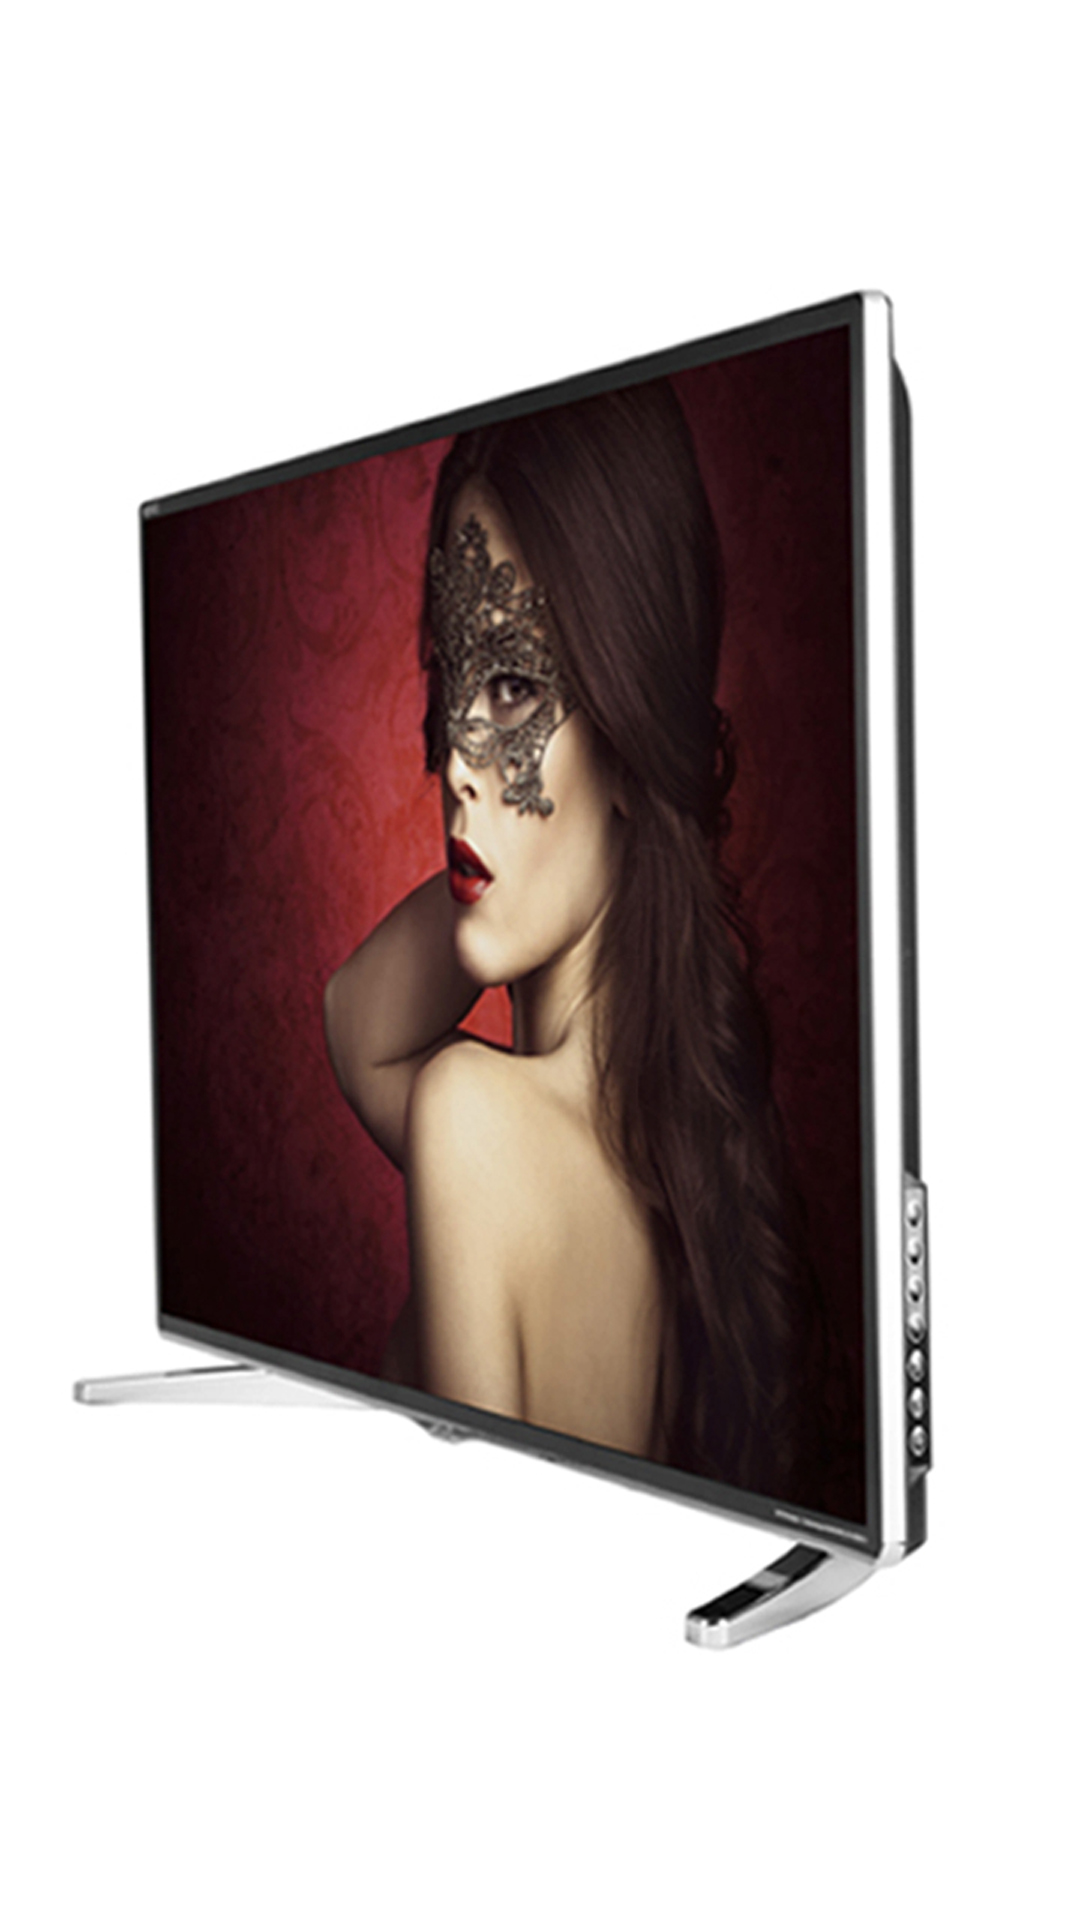 """Mitashi MiDE040v02 FS 101.6 cm (40"""") Full HD Smart LED TV (Free Air Mouse) with 3 Years Warranty"""